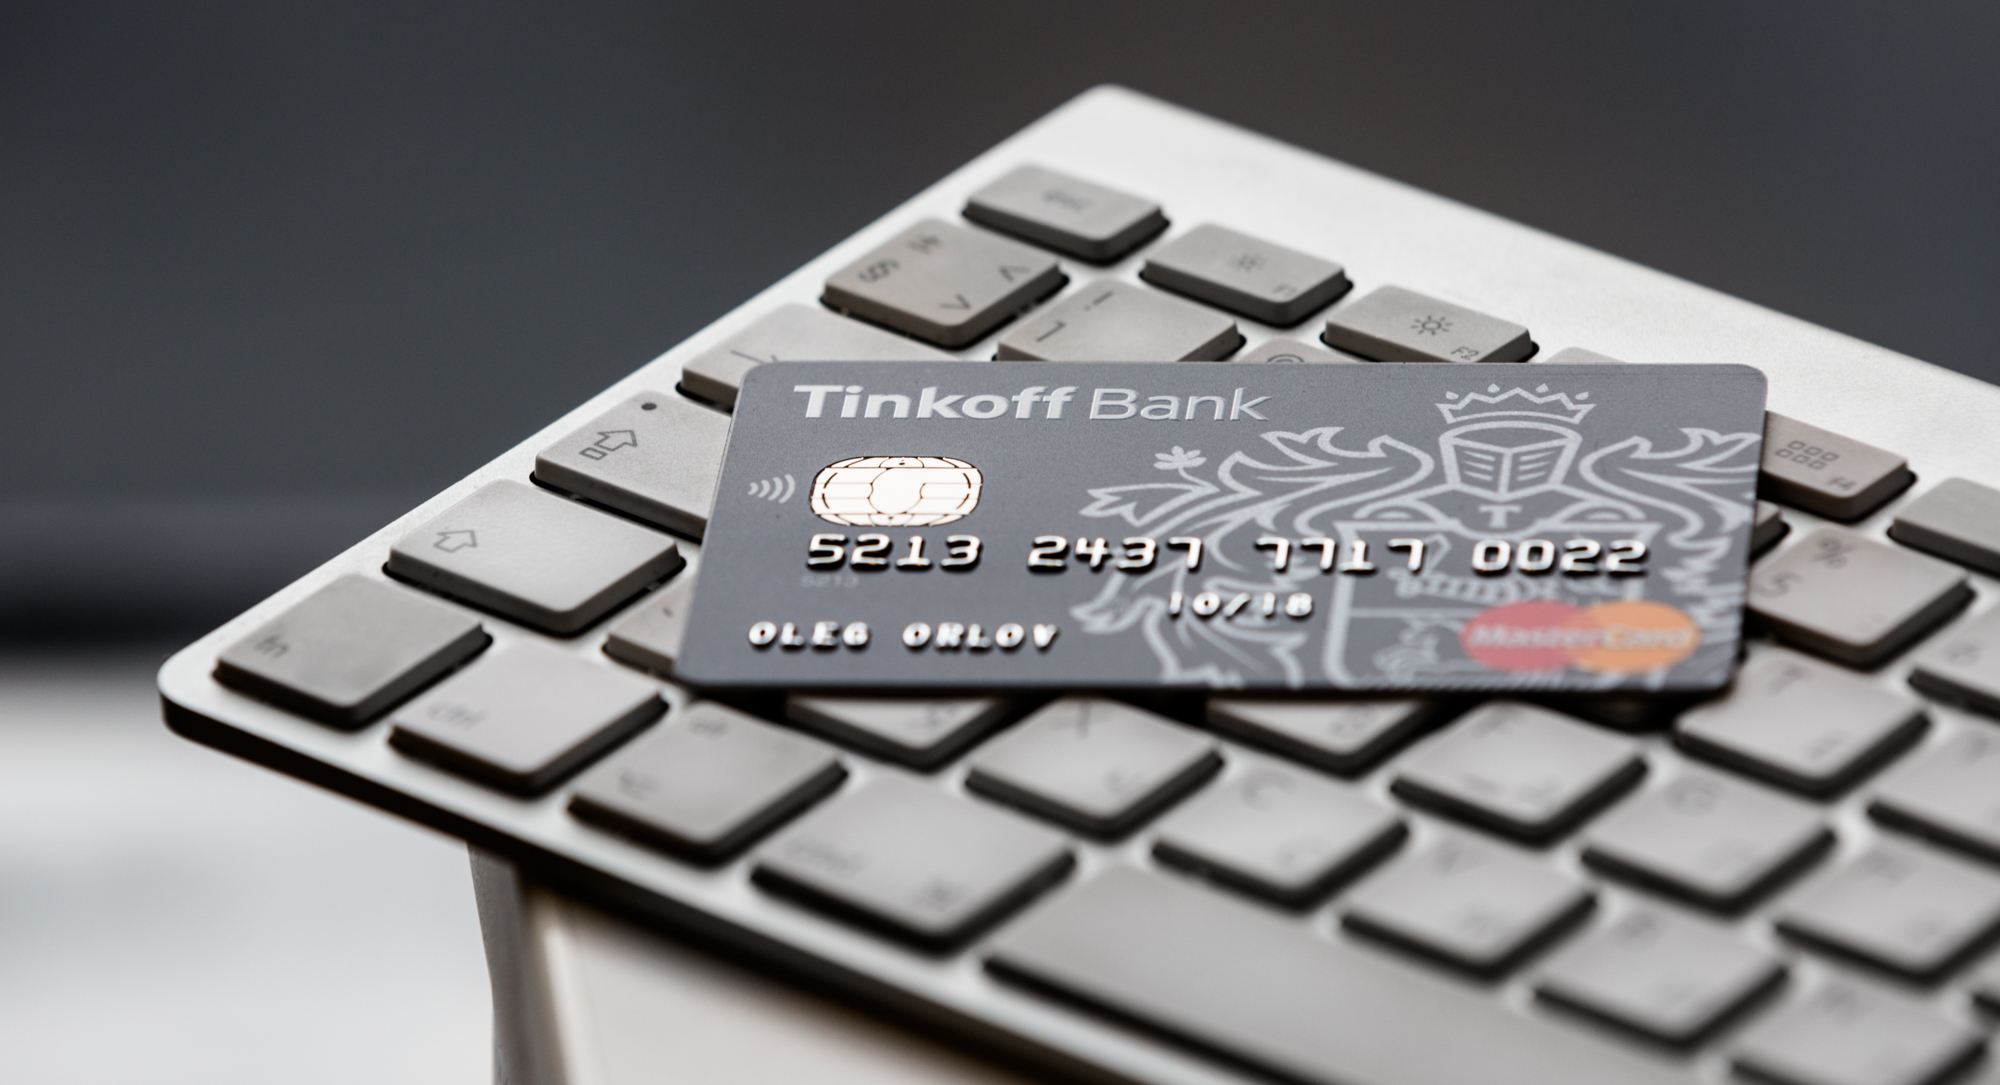 Tinkoff now accounts for 10% of new credit cards issued in Russia.